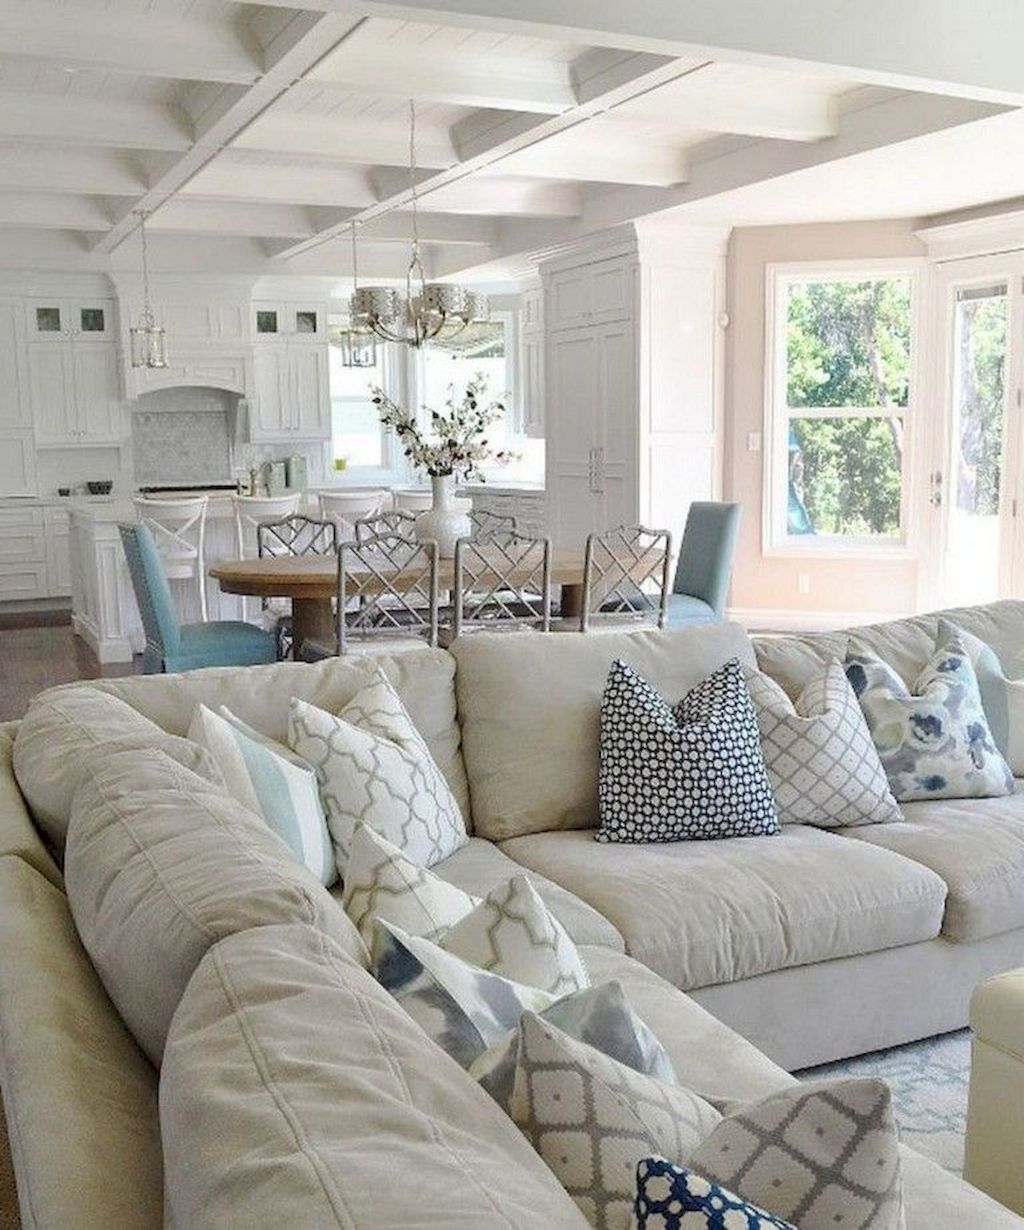 65 Gorgeous Coastal Living Room Decor Ideas images